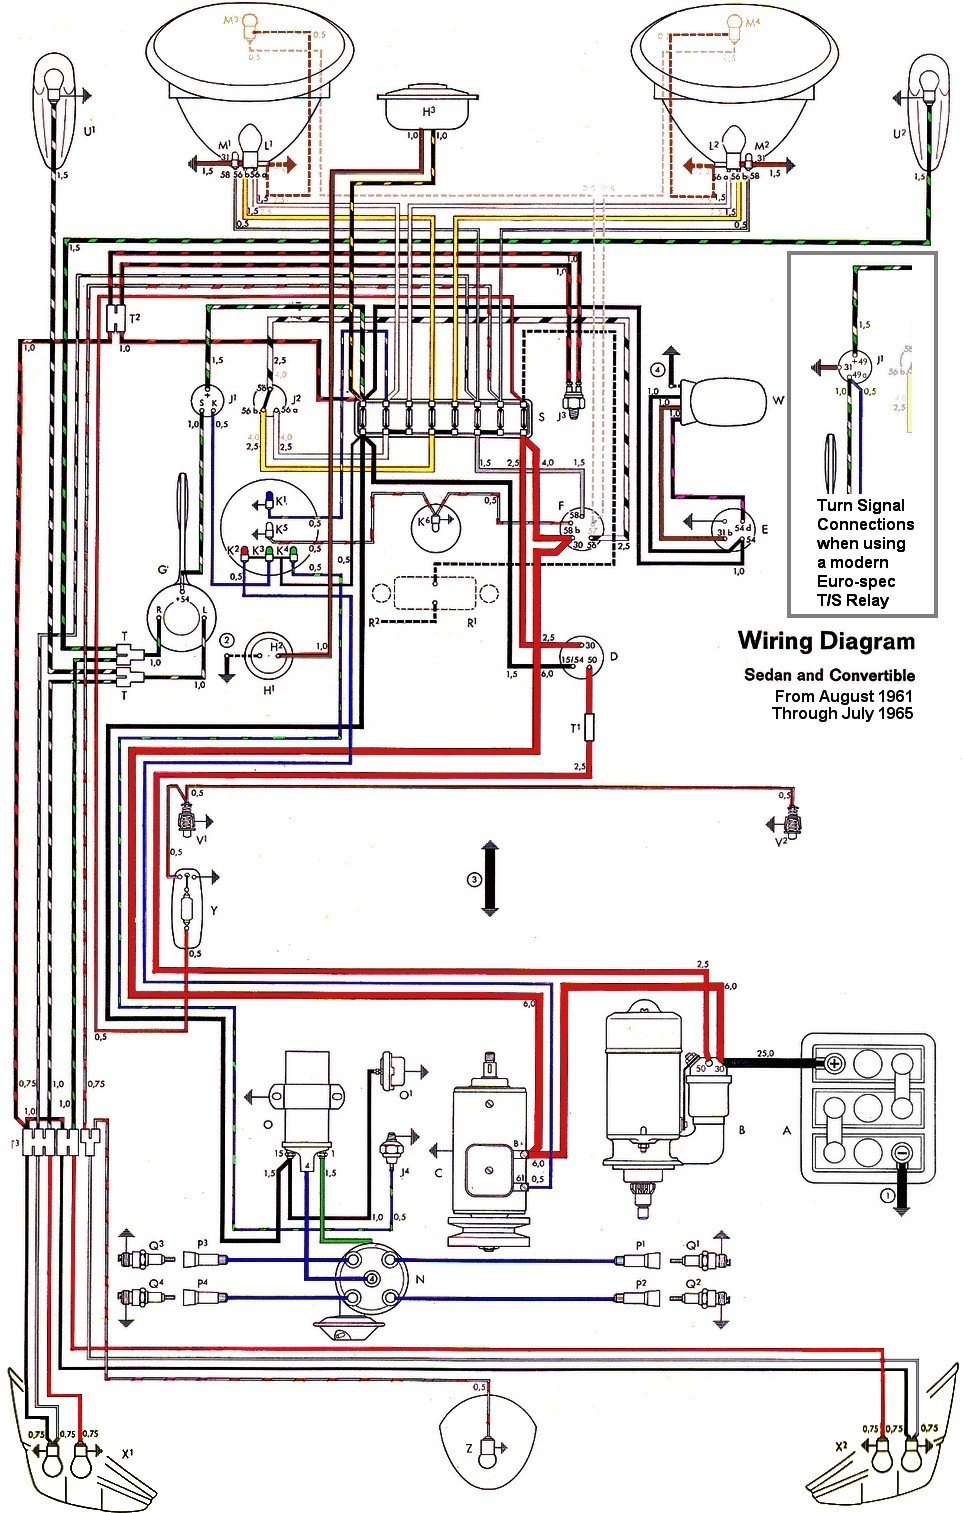 bug_62 65withinset volkswagen wiring diagram volkswagen golf wiring diagram \u2022 free 1973 super beetle wiring harness at nearapp.co